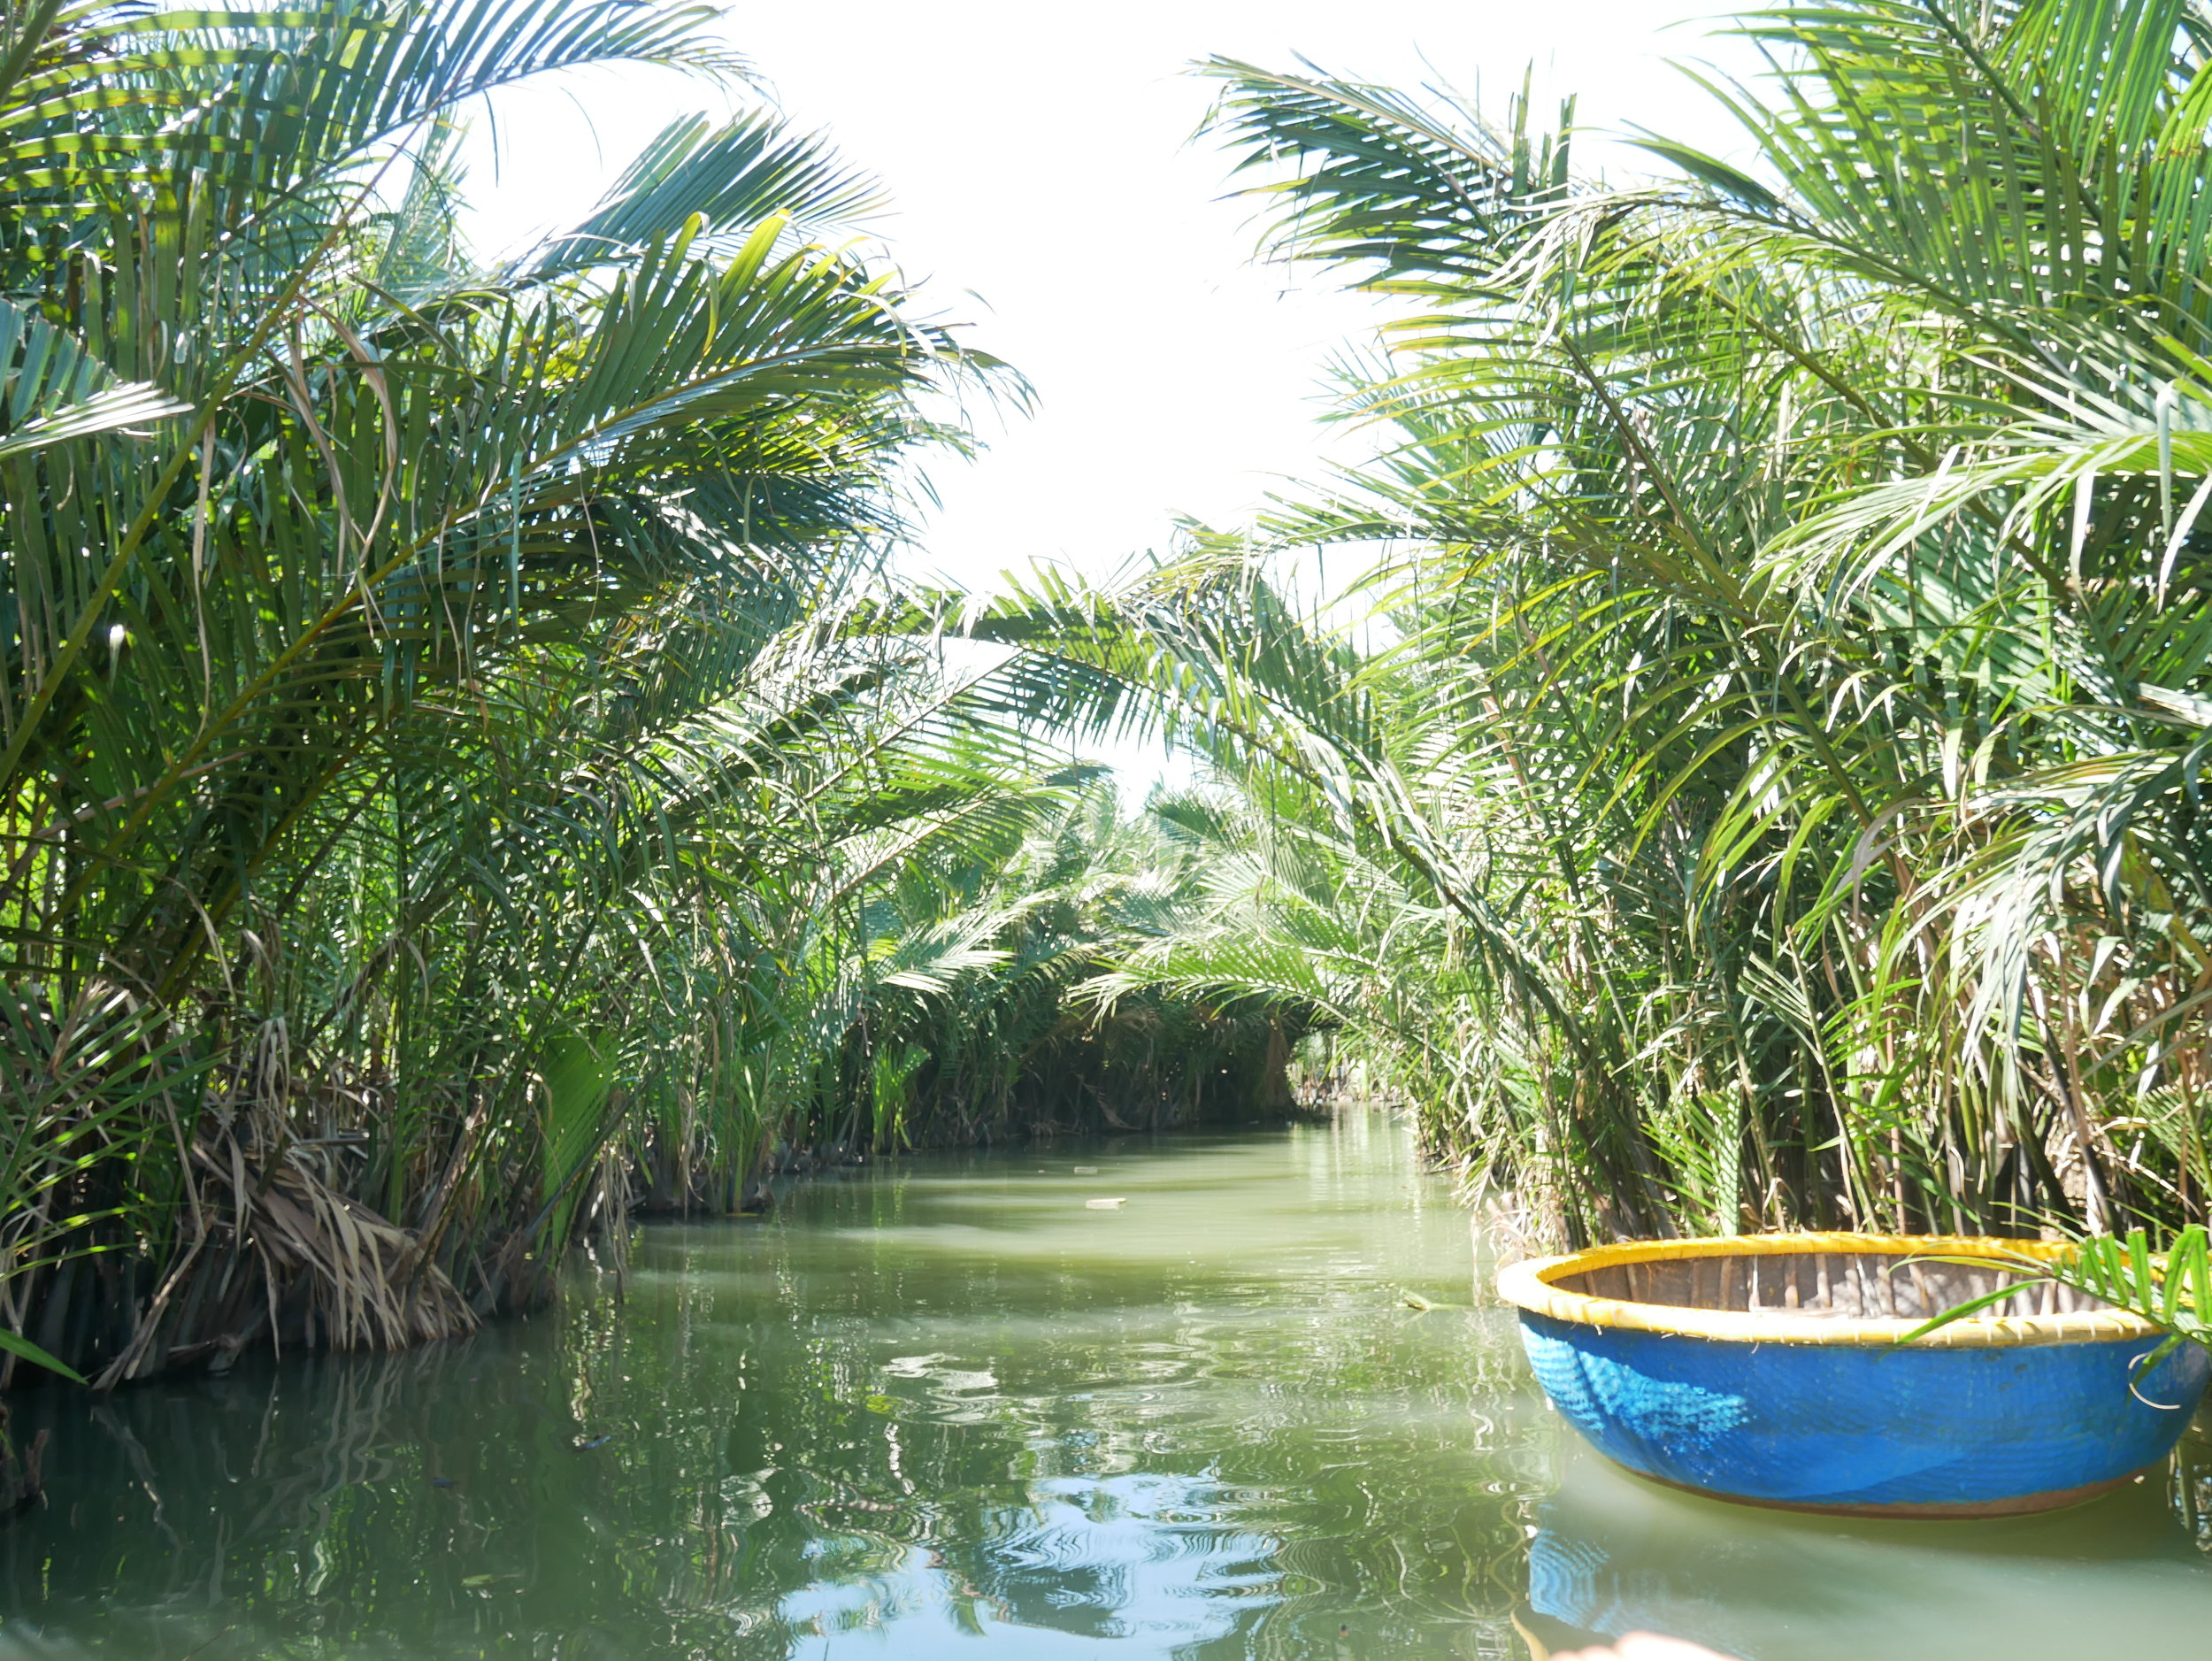 Coconut Basket boat on Thu Bon river. Fun experiences of Hoi An